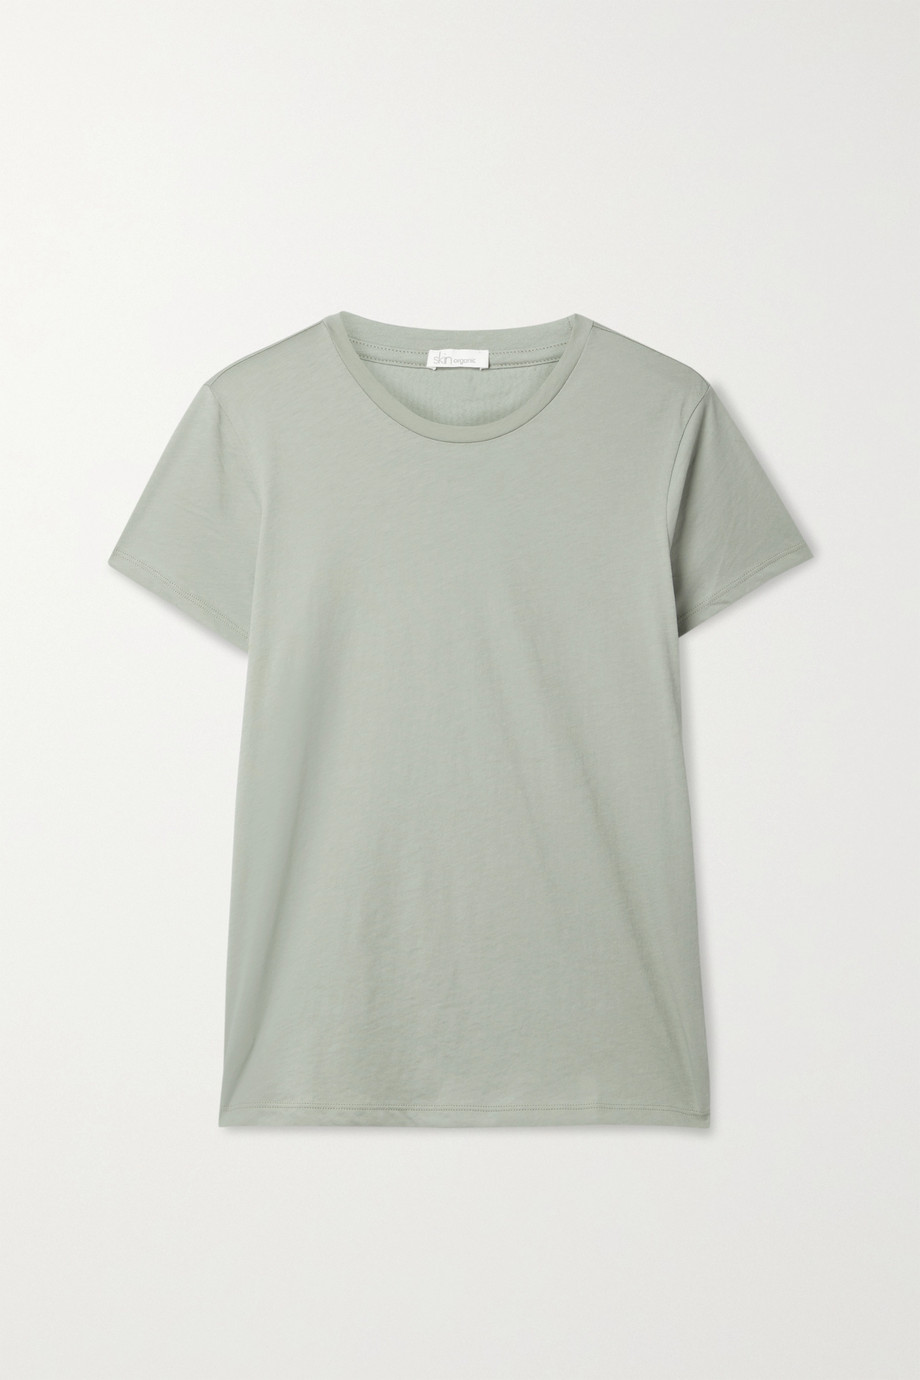 Skin + NET SUSTAIN Carly organic Pima cotton-jersey T-shirt